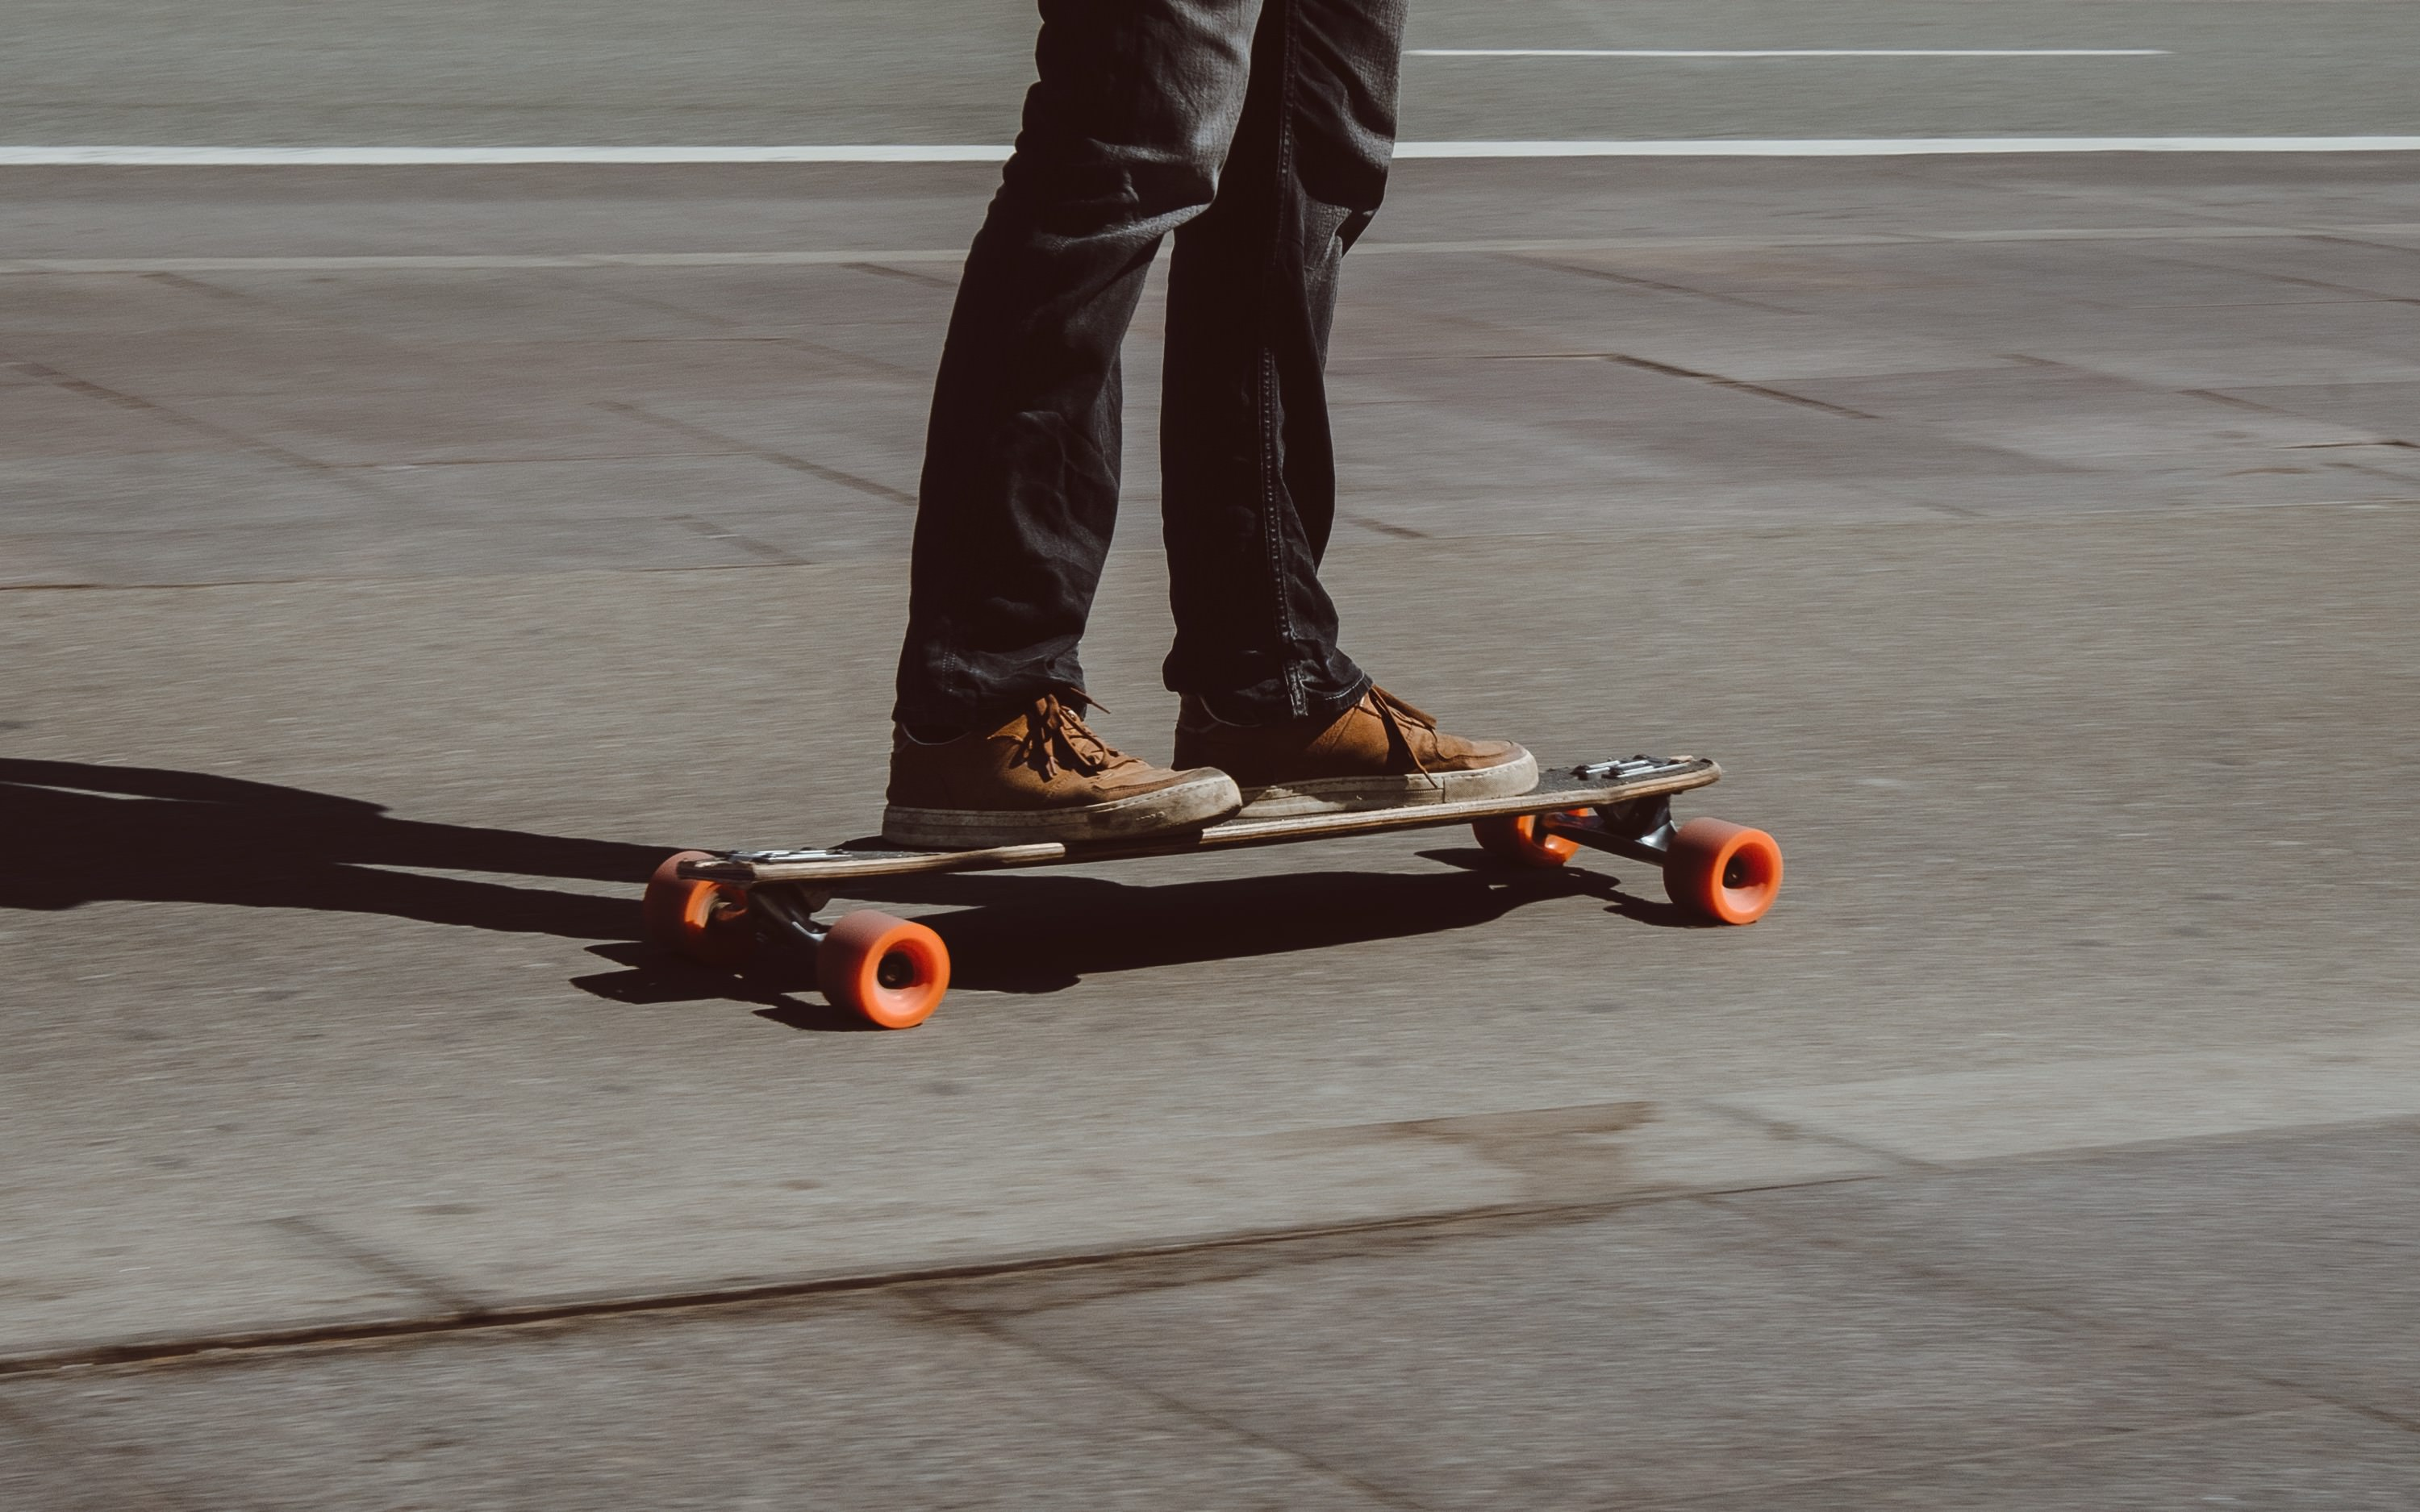 Longboarding with LESS and Boardlife!